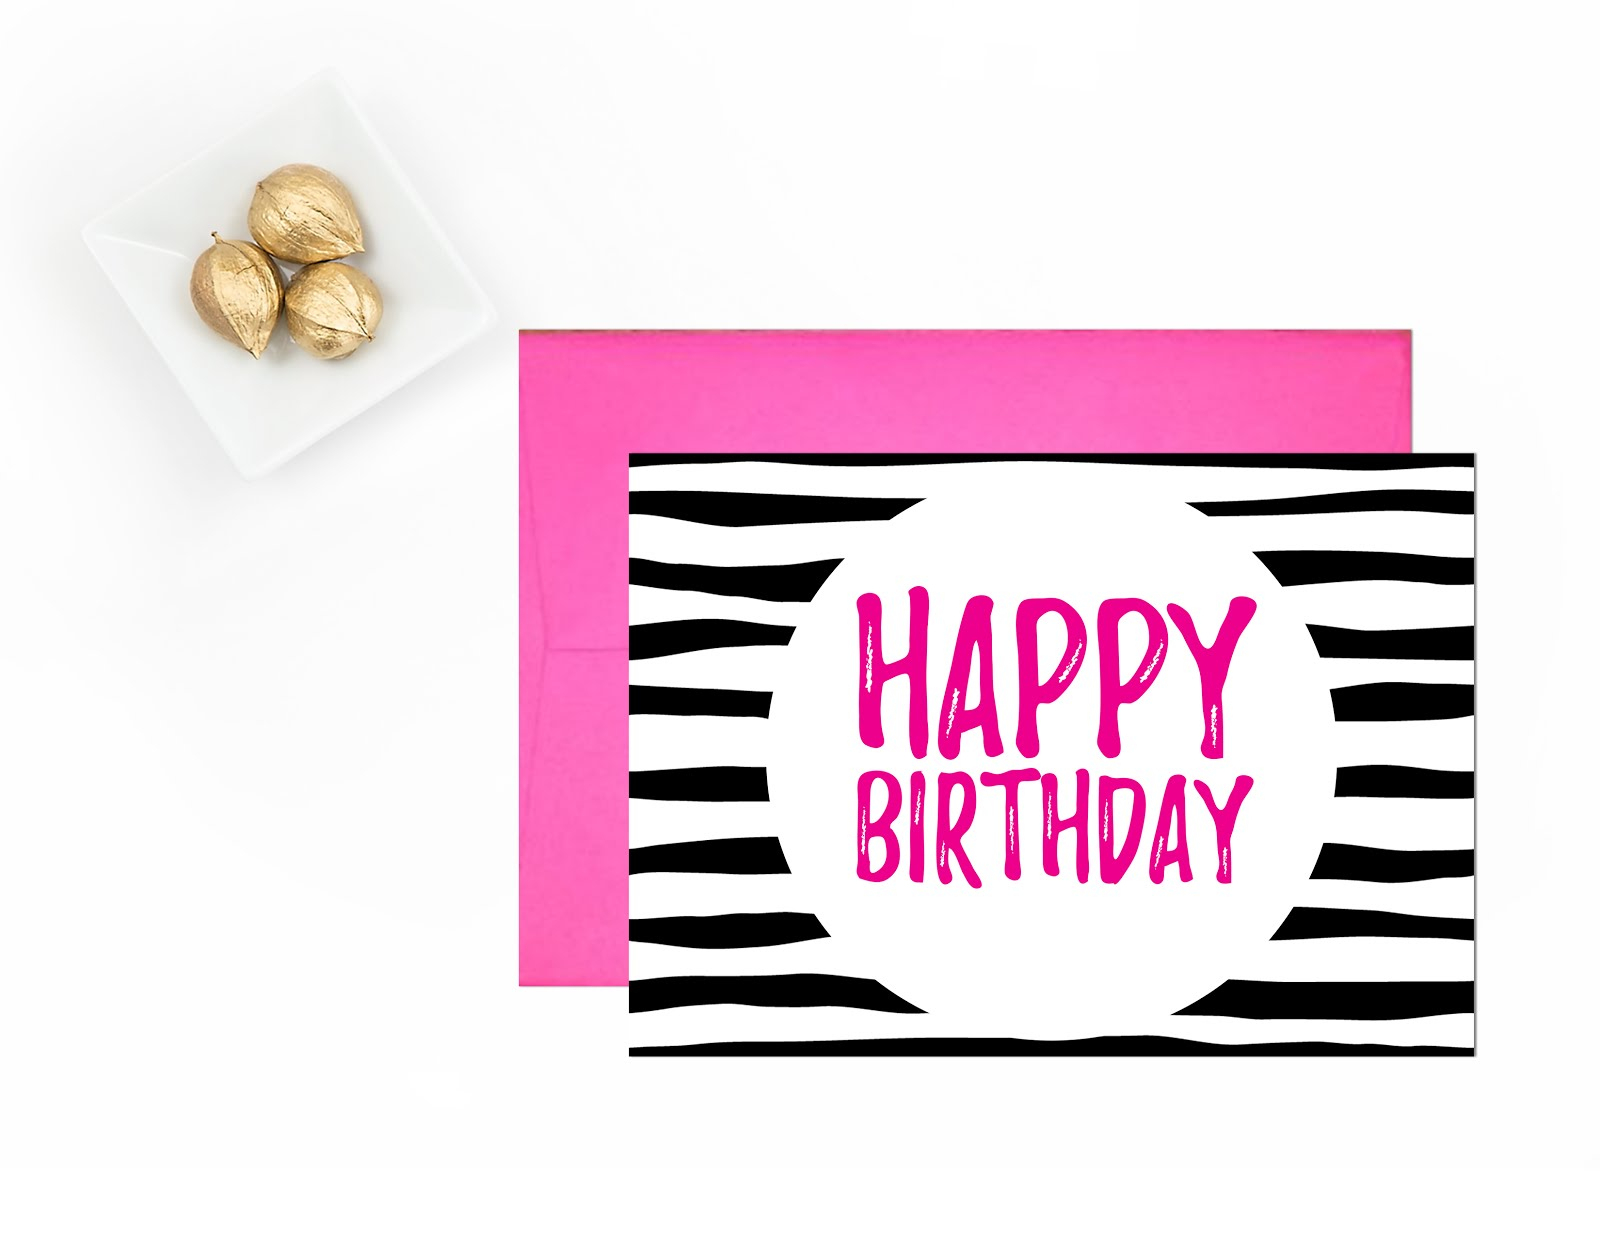 Happy Birthday | Free Printable Greeting Cards - Andree In Wonderland - Free Printable Birthday Cards For Adults